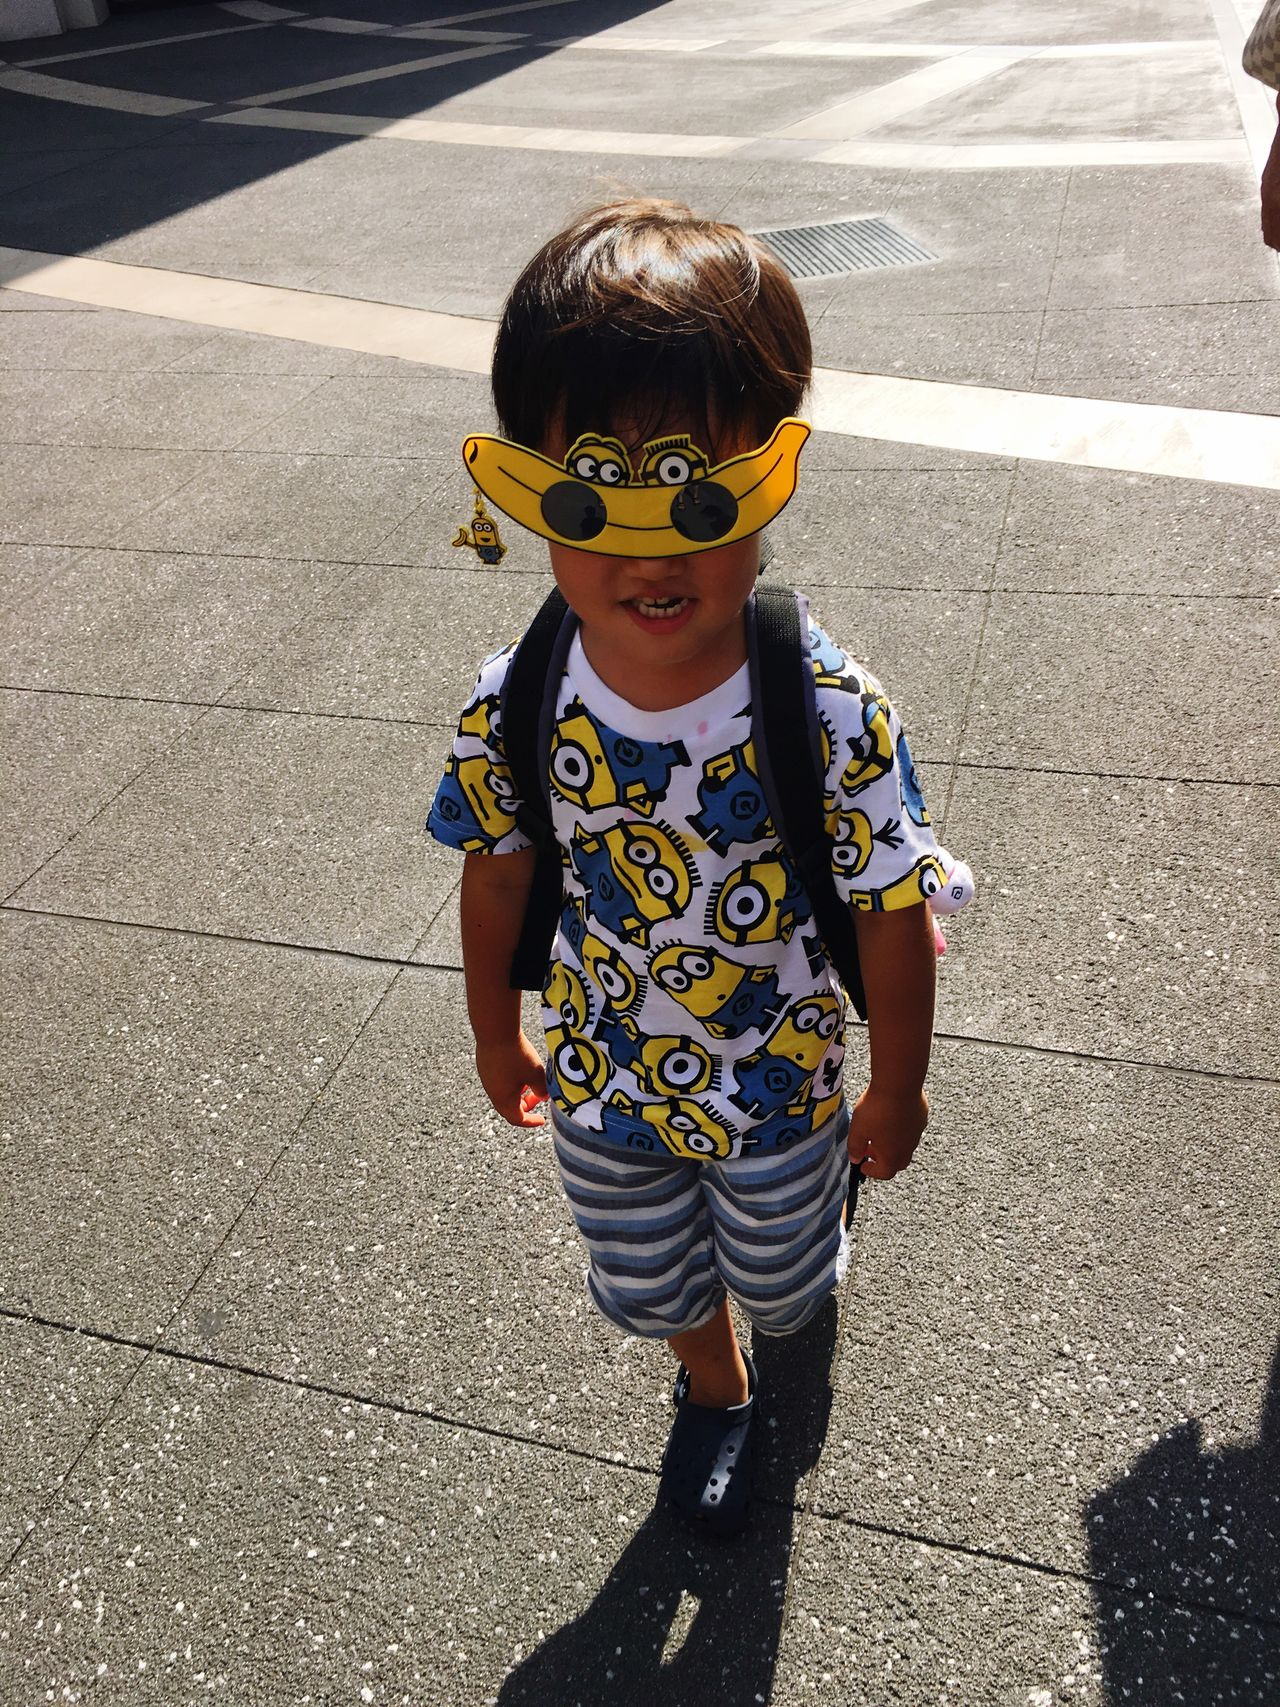 Childhood One Boy Only Sunglasses Children Only Child One Person Toddler  Shadow Males  Portrait Casual Clothing Looking At Camera Outdoors Day People Disguise Boys Real People Road Minions Minion  EyeEmNewHere